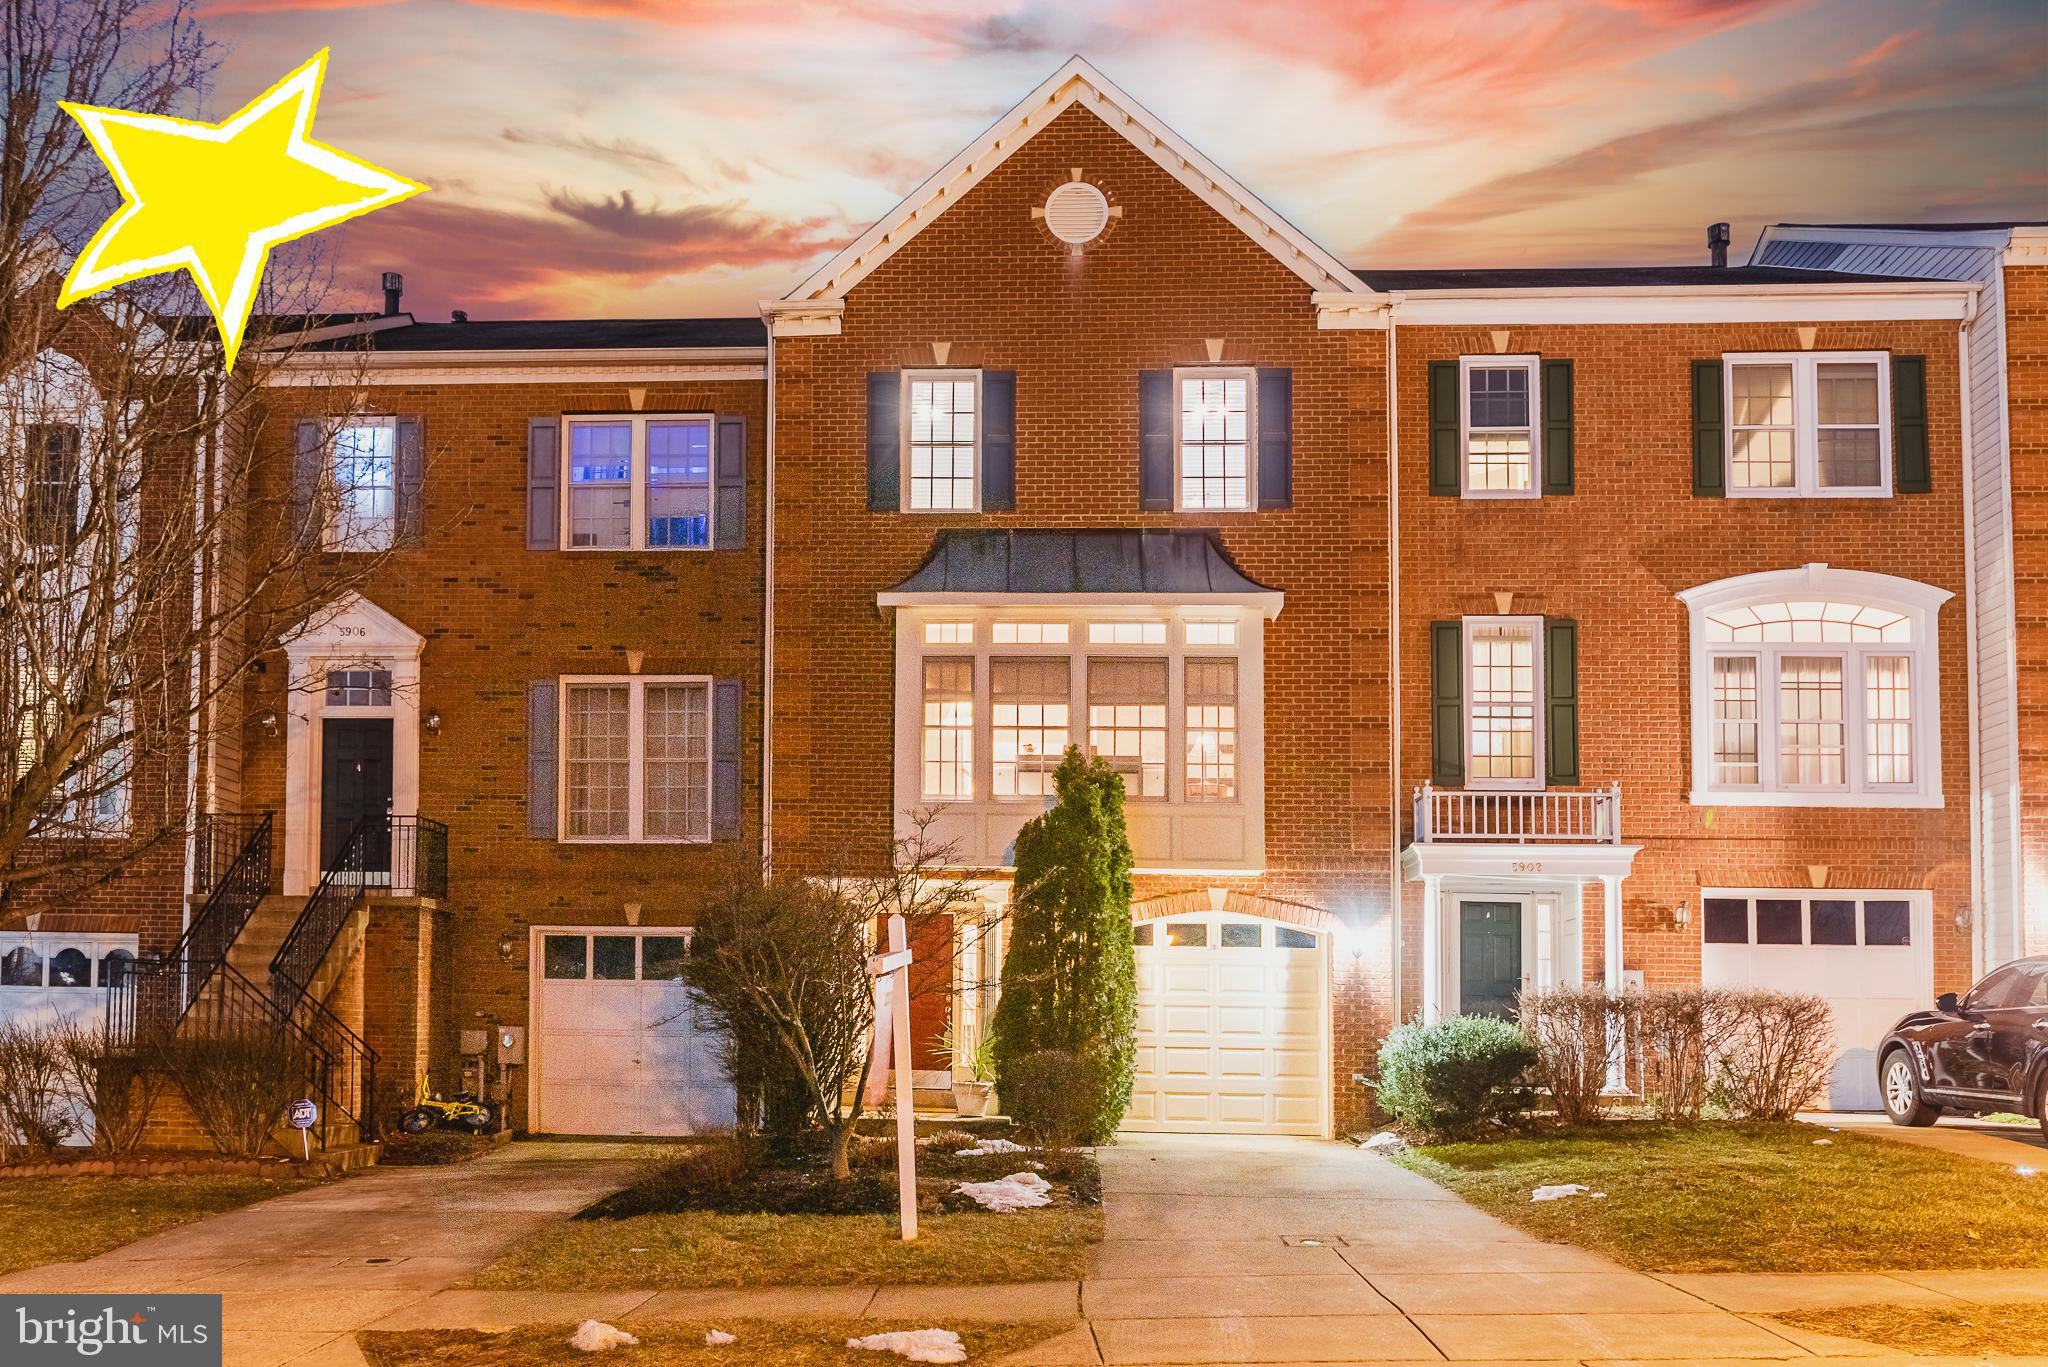 Rarely available townhome in sought after Lyndwood neighborhood.  Spacious TH floorplan is enhanced